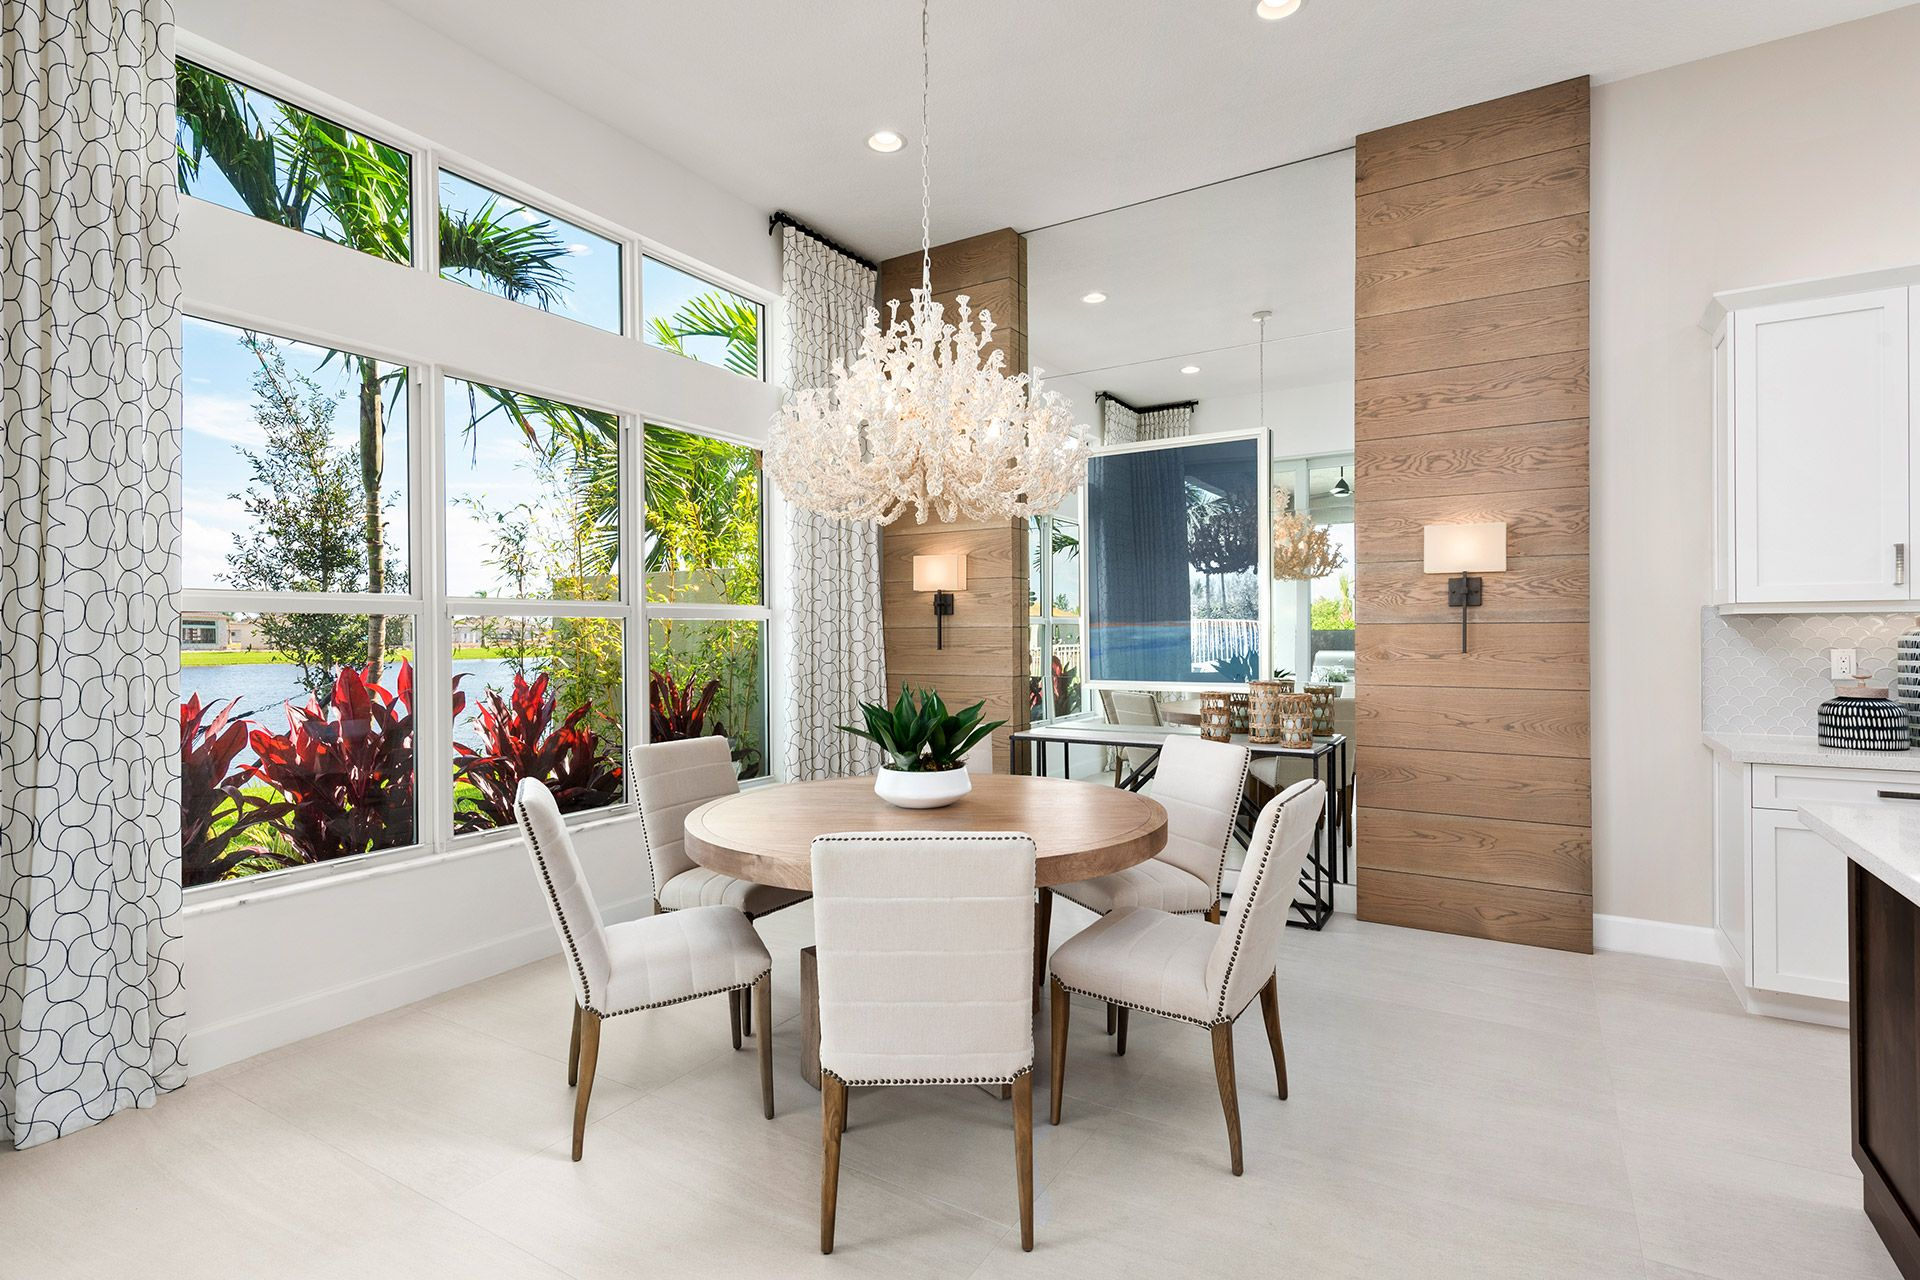 Kitchen featured in the Aruba By GL Homes in Palm Beach County, FL